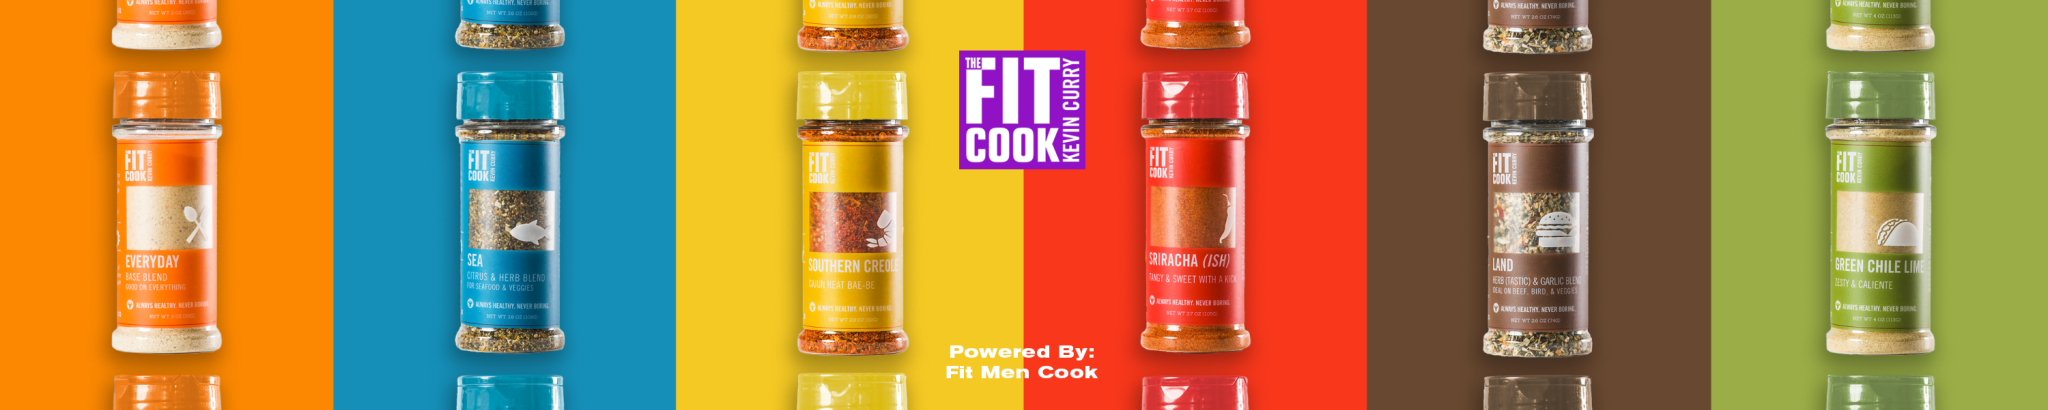 FitMenCook: The Fit Cook Spices